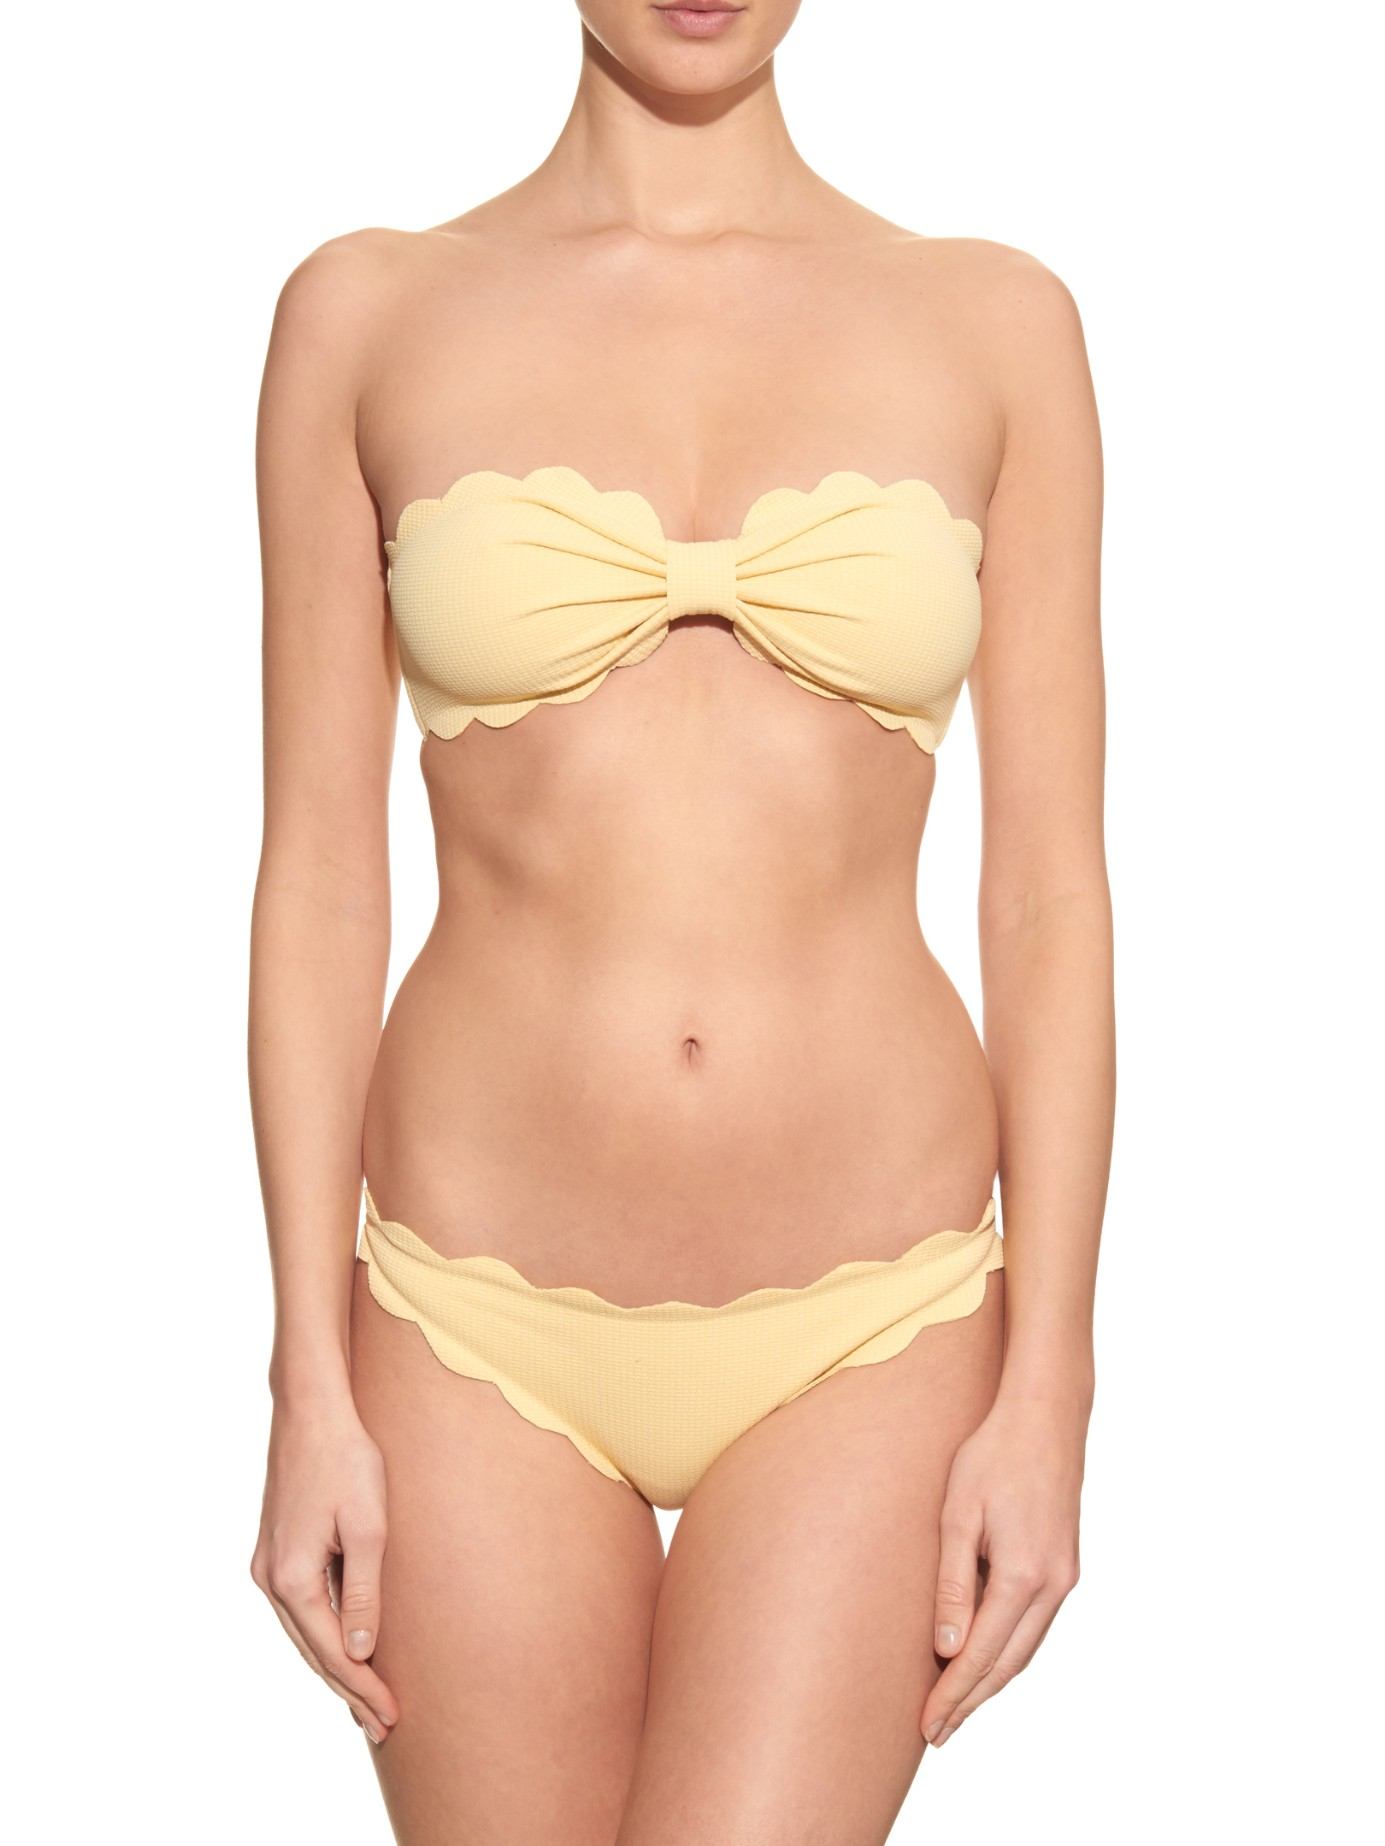 Antibes Dotty Triangle Scallop Edge Bikini Marysia Swim Discount Affordable Buy Cheap Top Quality Outlet Order Discounts Cheap Online Cheap Sale Marketable DroAWIR